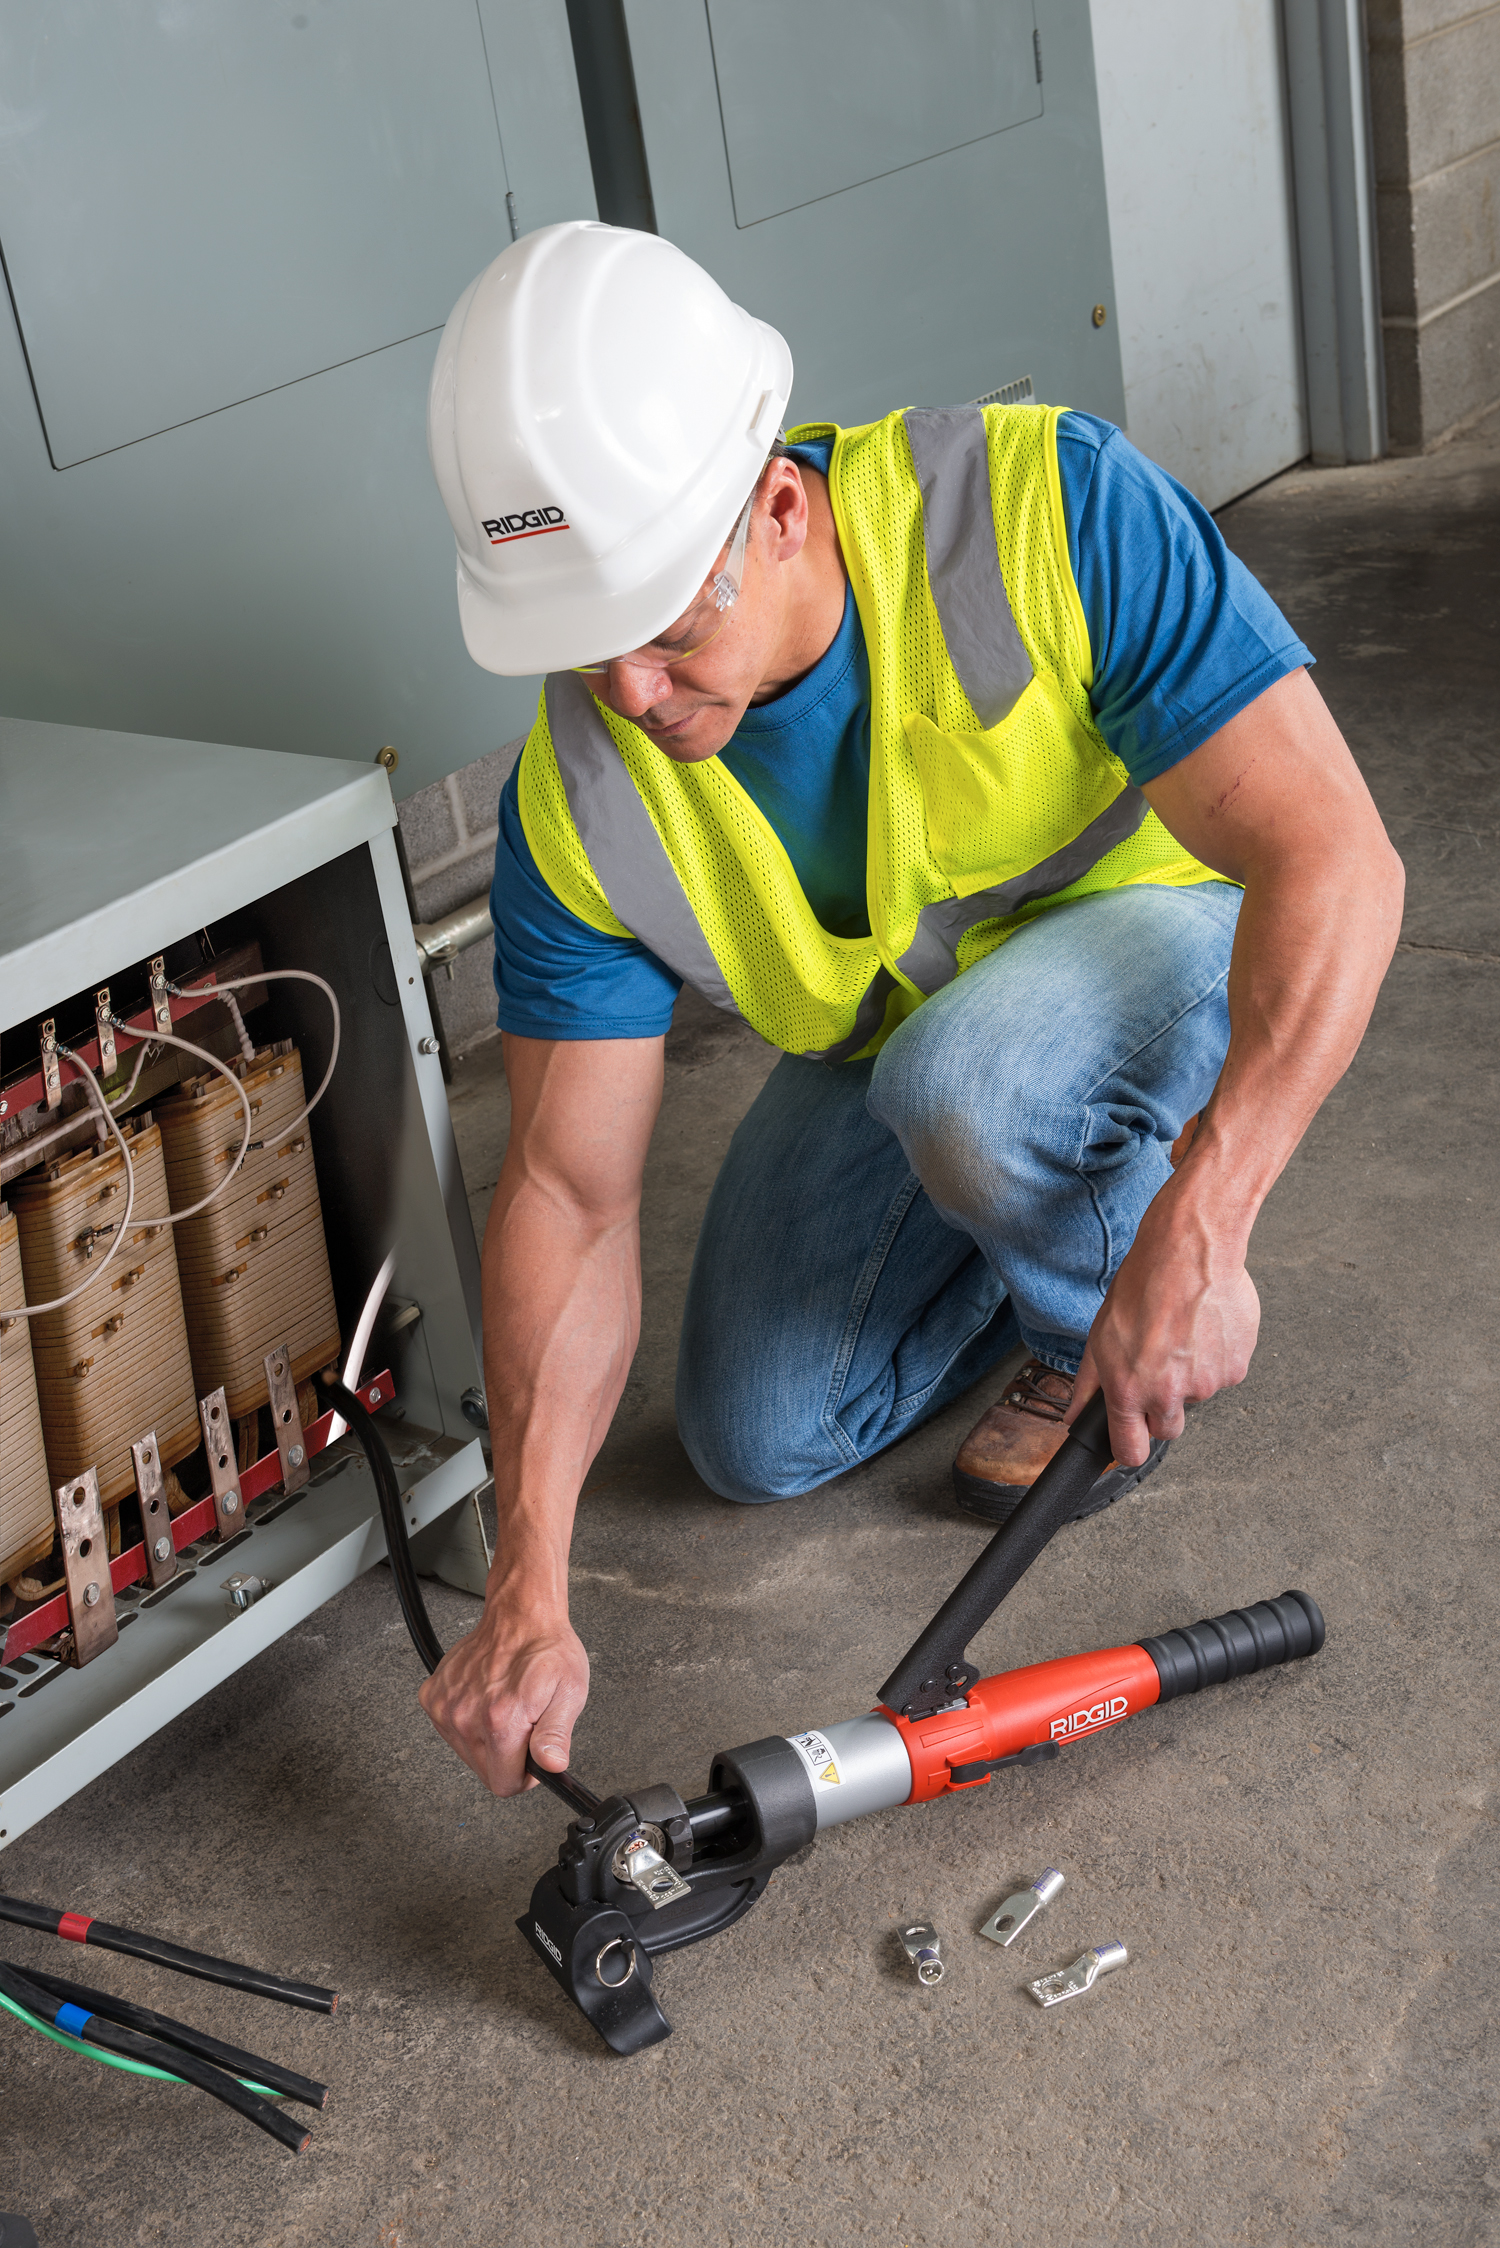 RIDGID® Introduces the Lightest, Easiest to Use 12-Ton Manual Hydraulic Crimp Tool